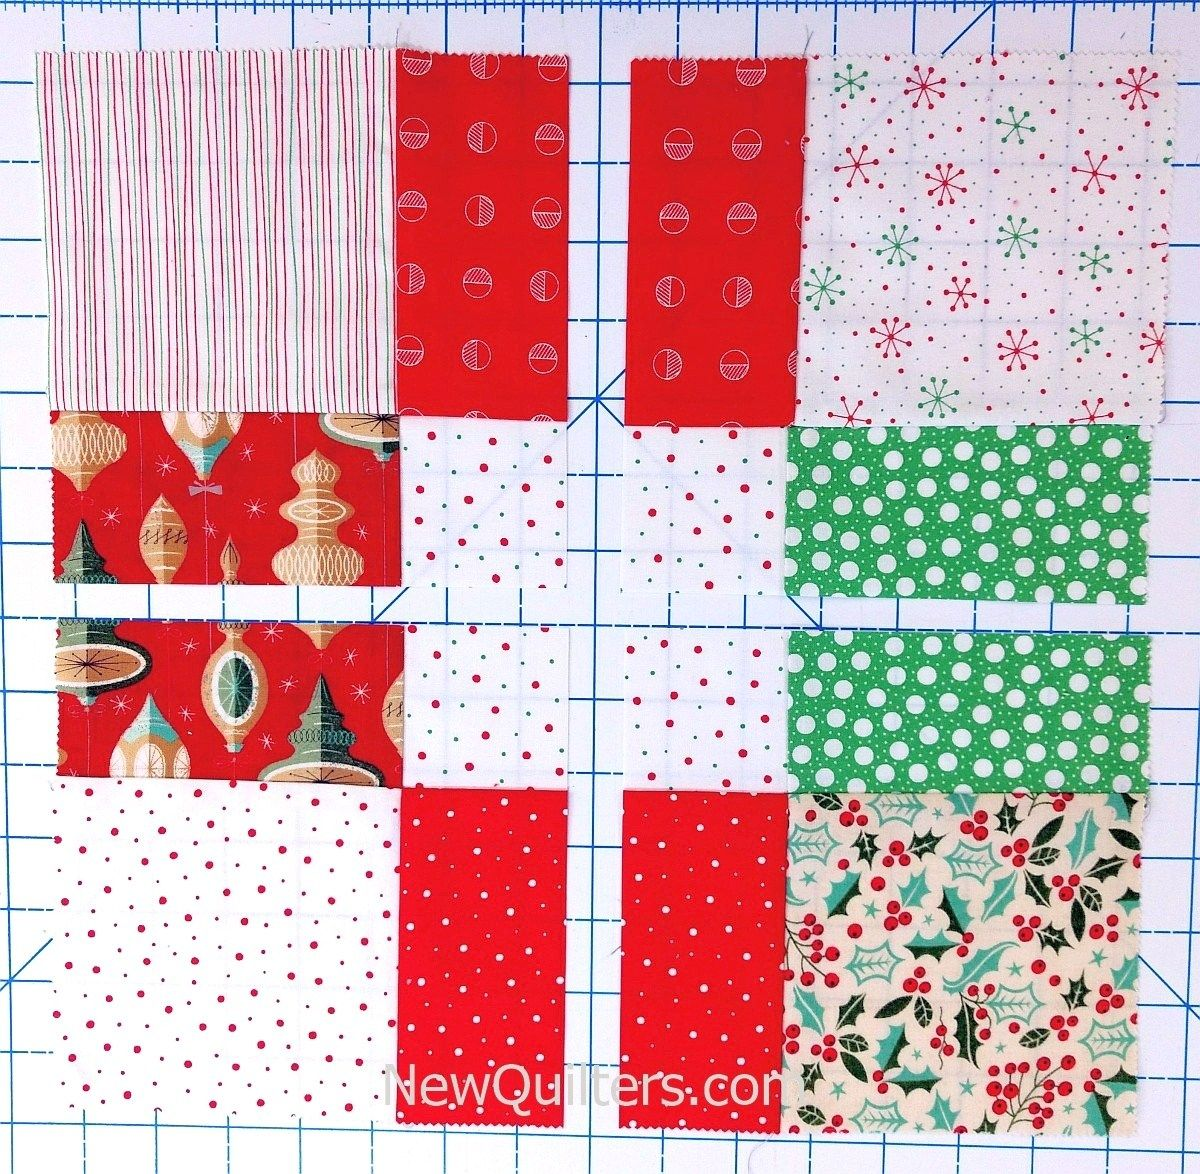 12 Days Of Christmas Quilted Table Runner Tutorial Quilted Table Runners Table Runner Tutorial Christmas Table Runner